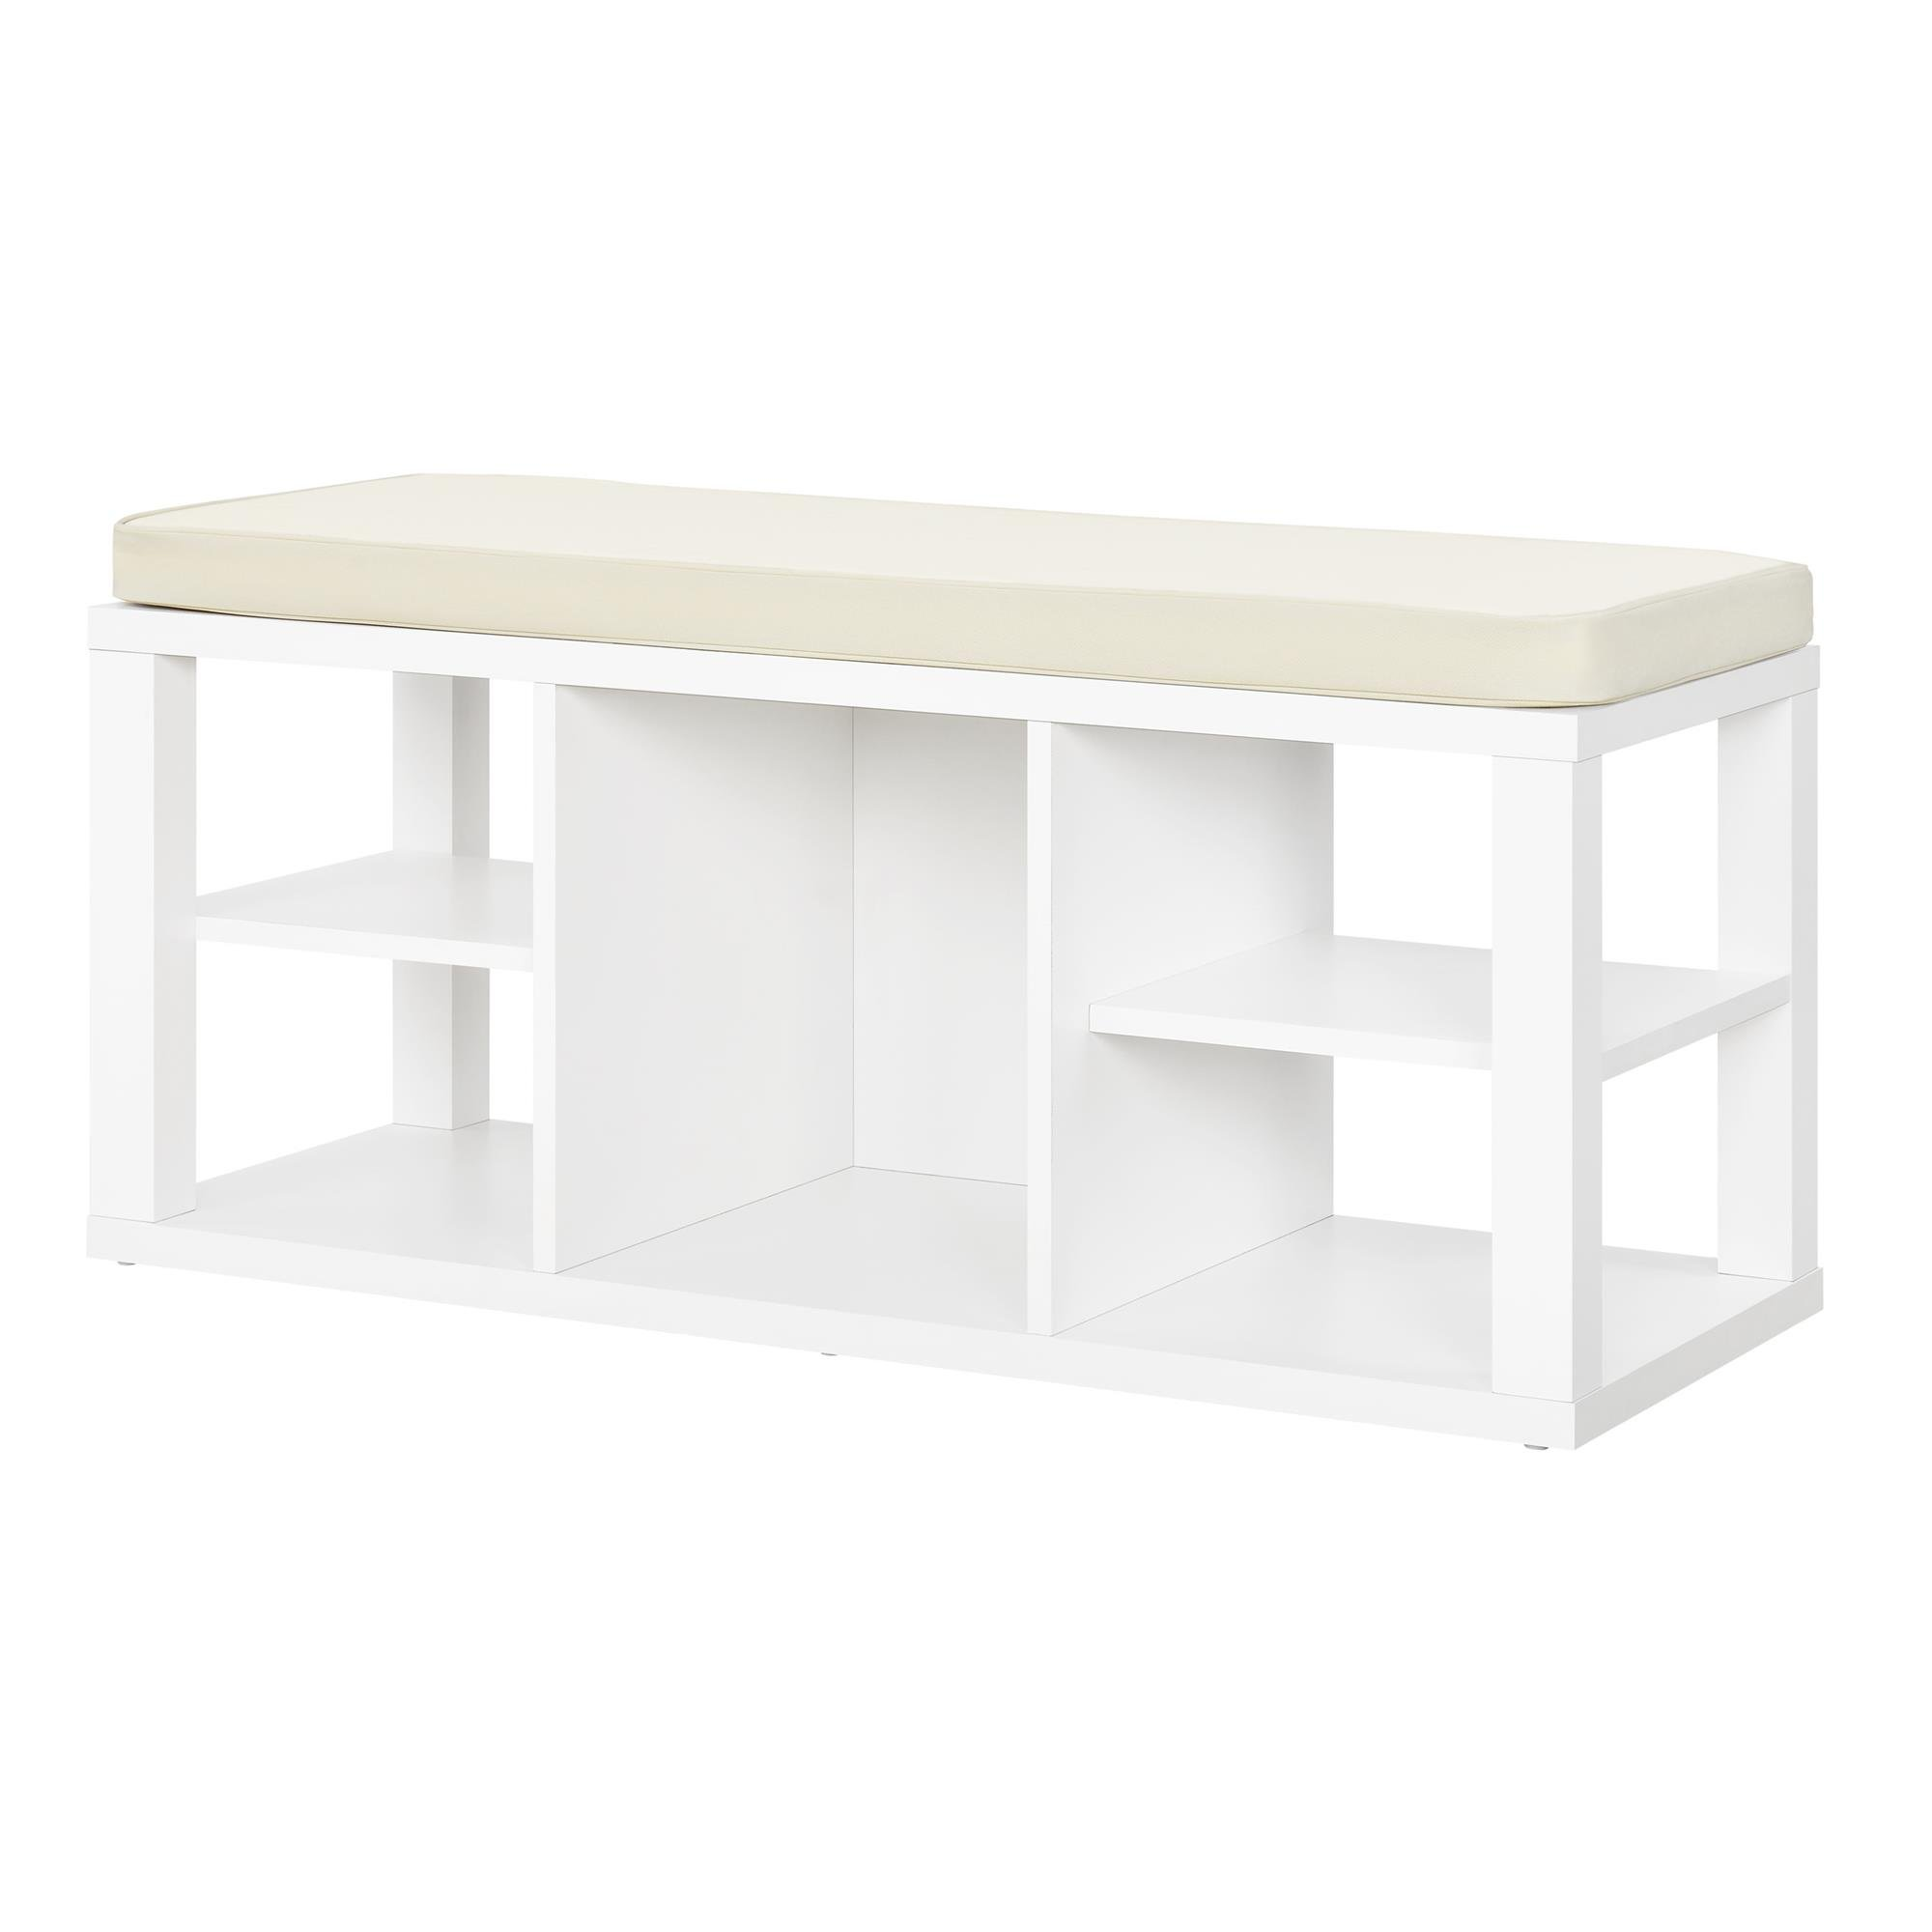 Ameriwood Home Parsons Storage Bench, White by Ameriwood Home